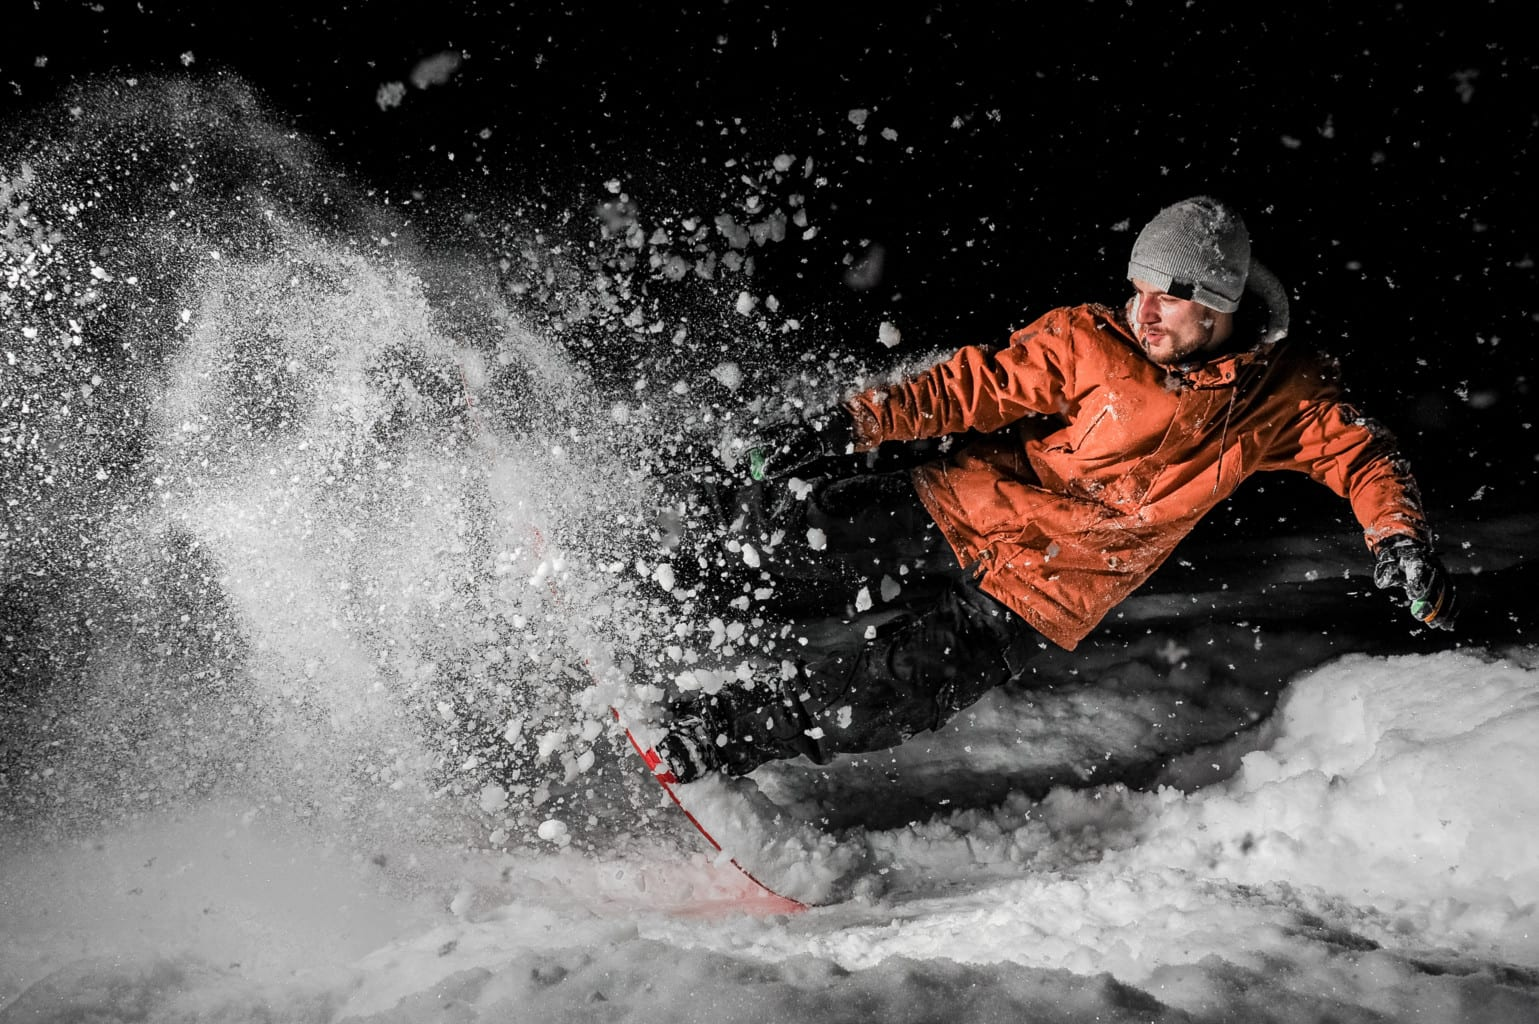 Young Snowboarder In Orange Sportswear And Jumping On The Board